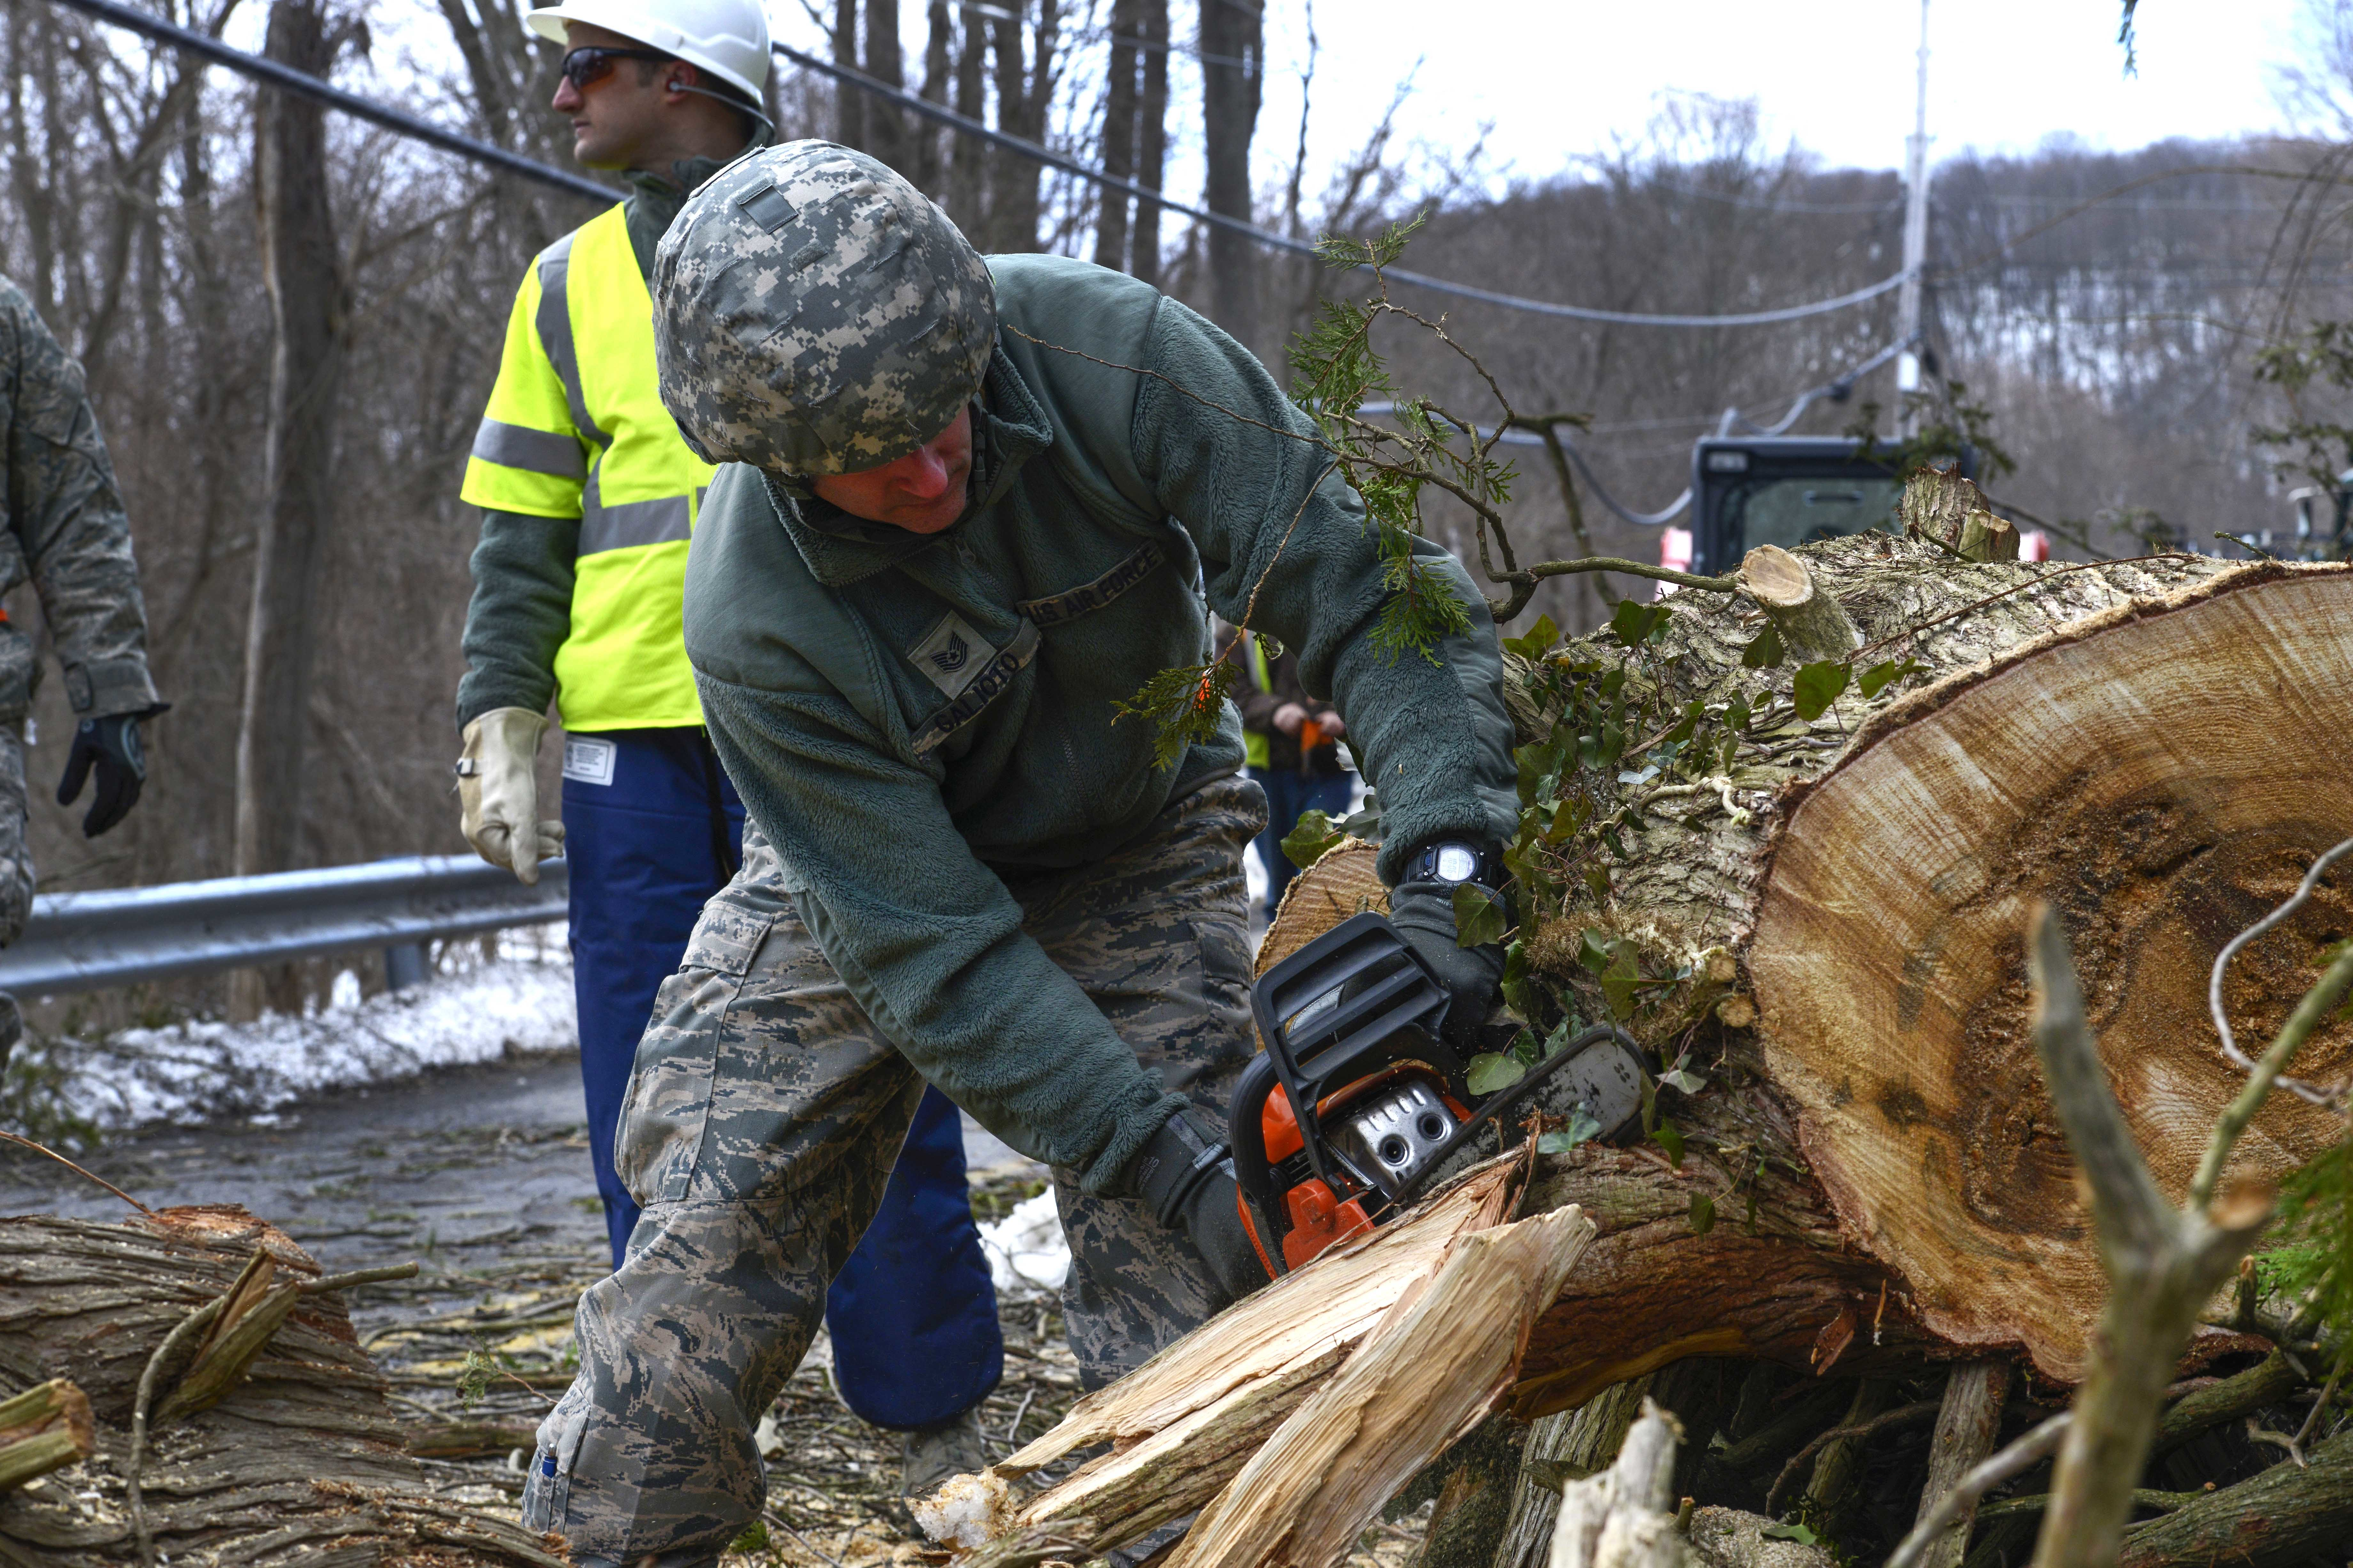 An airmen uses a chainsaw to cut a fallen tree.